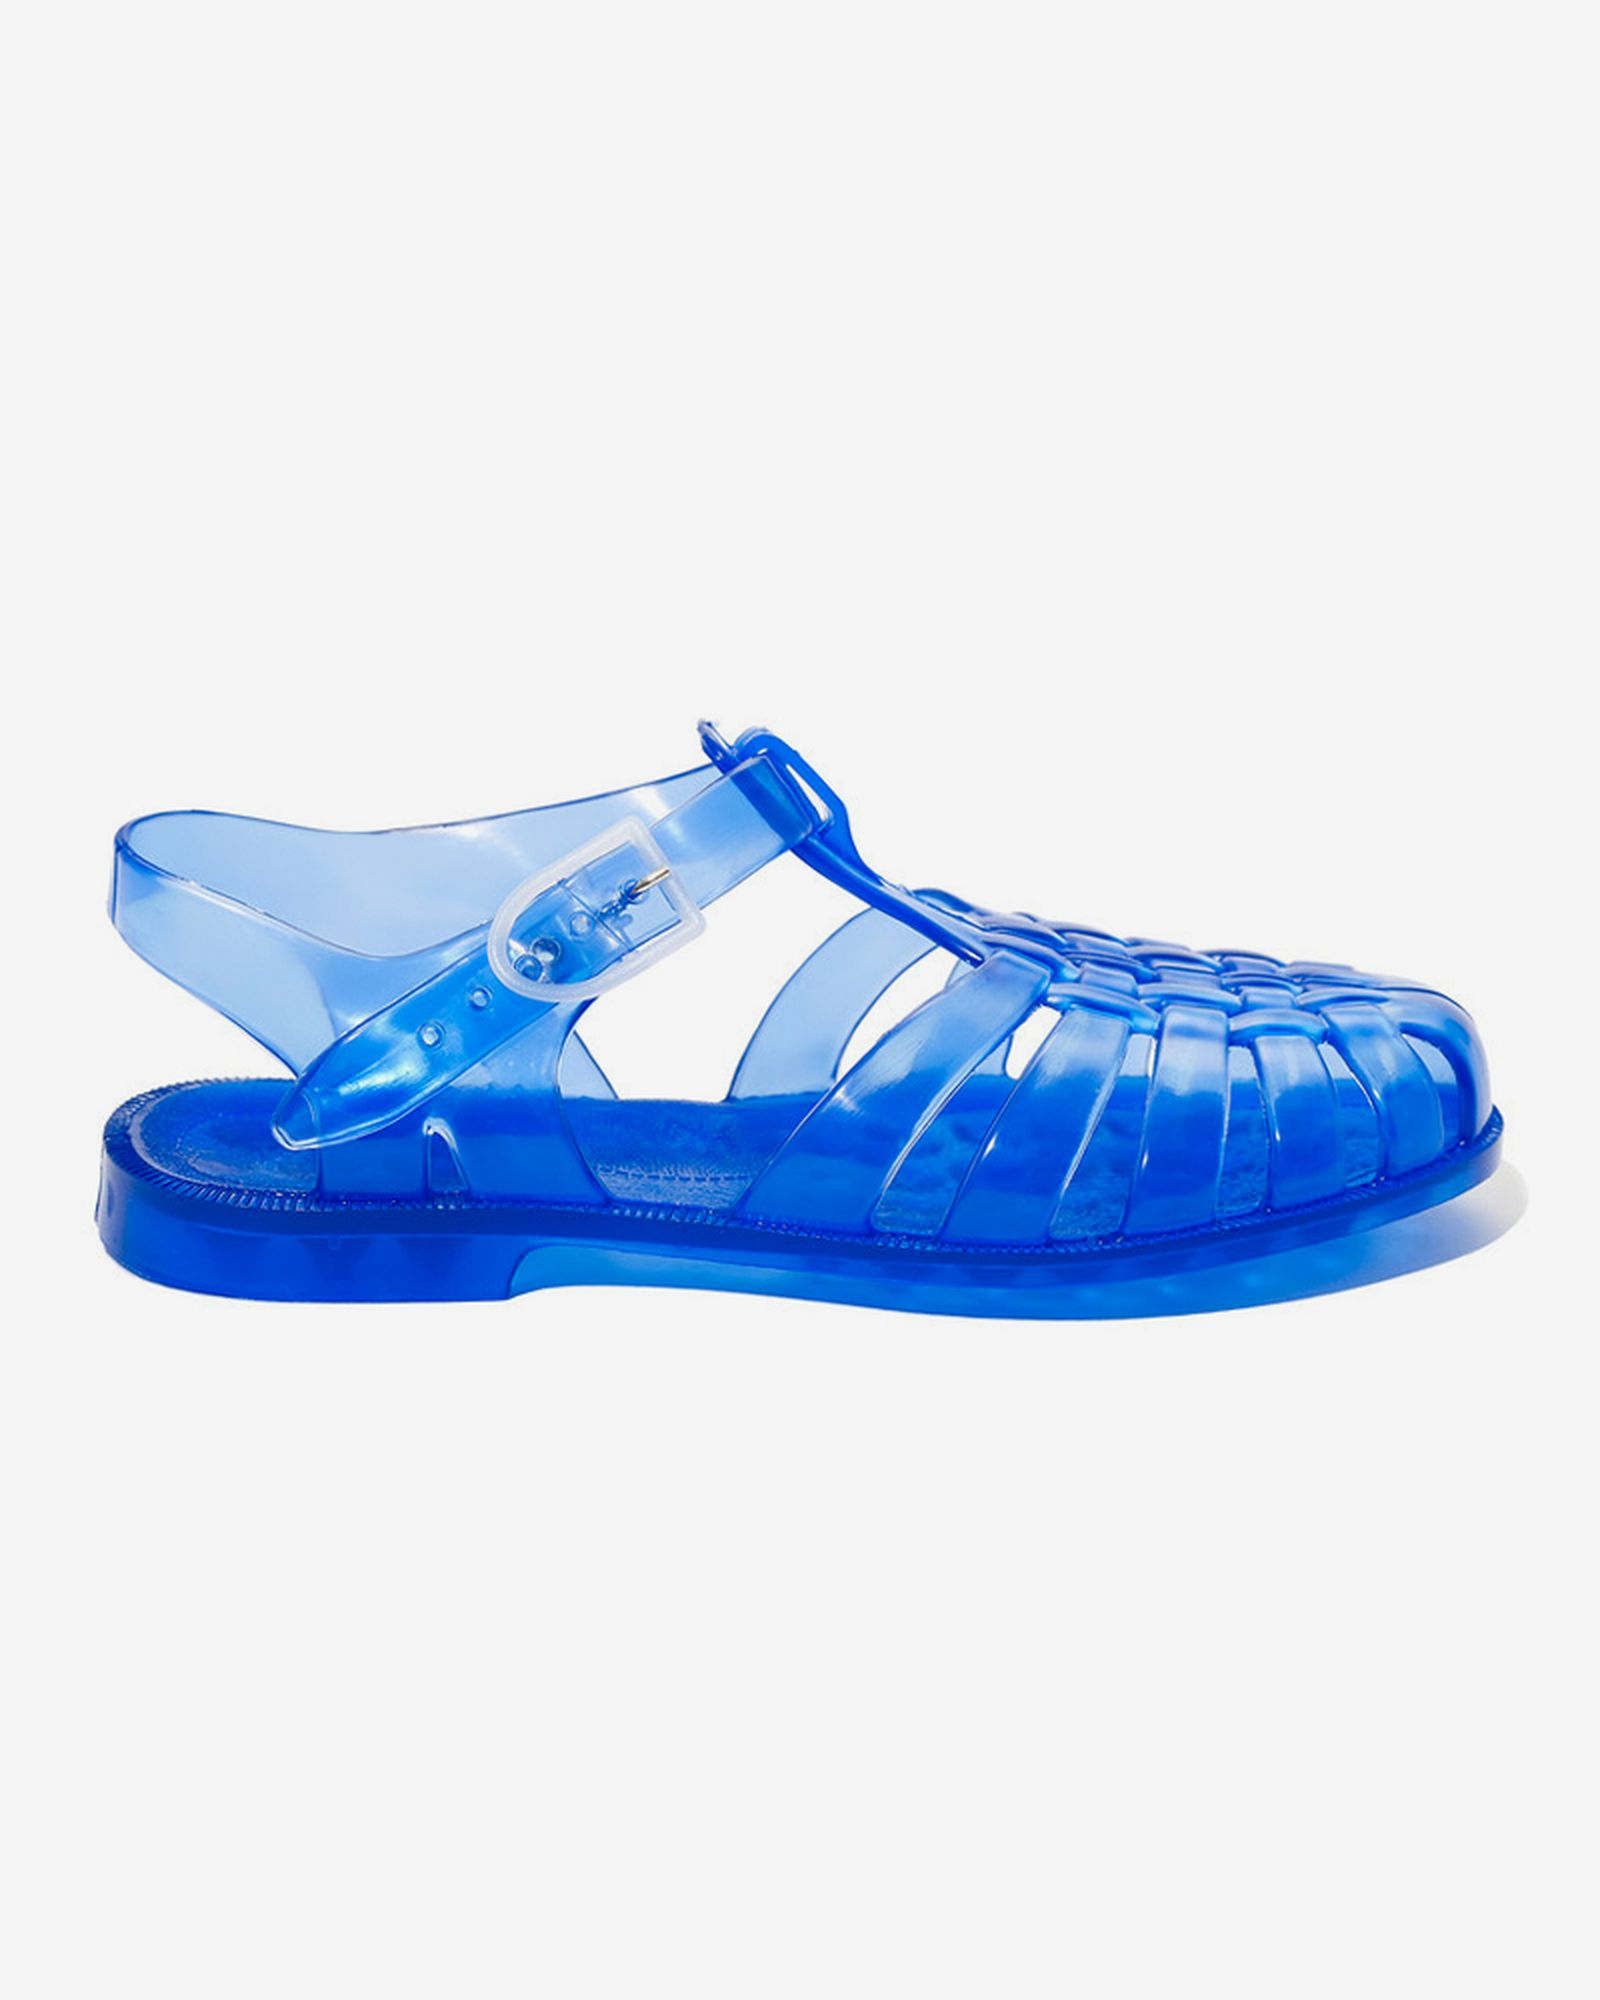 dad-sandals-roundtable-shopping-guide-08